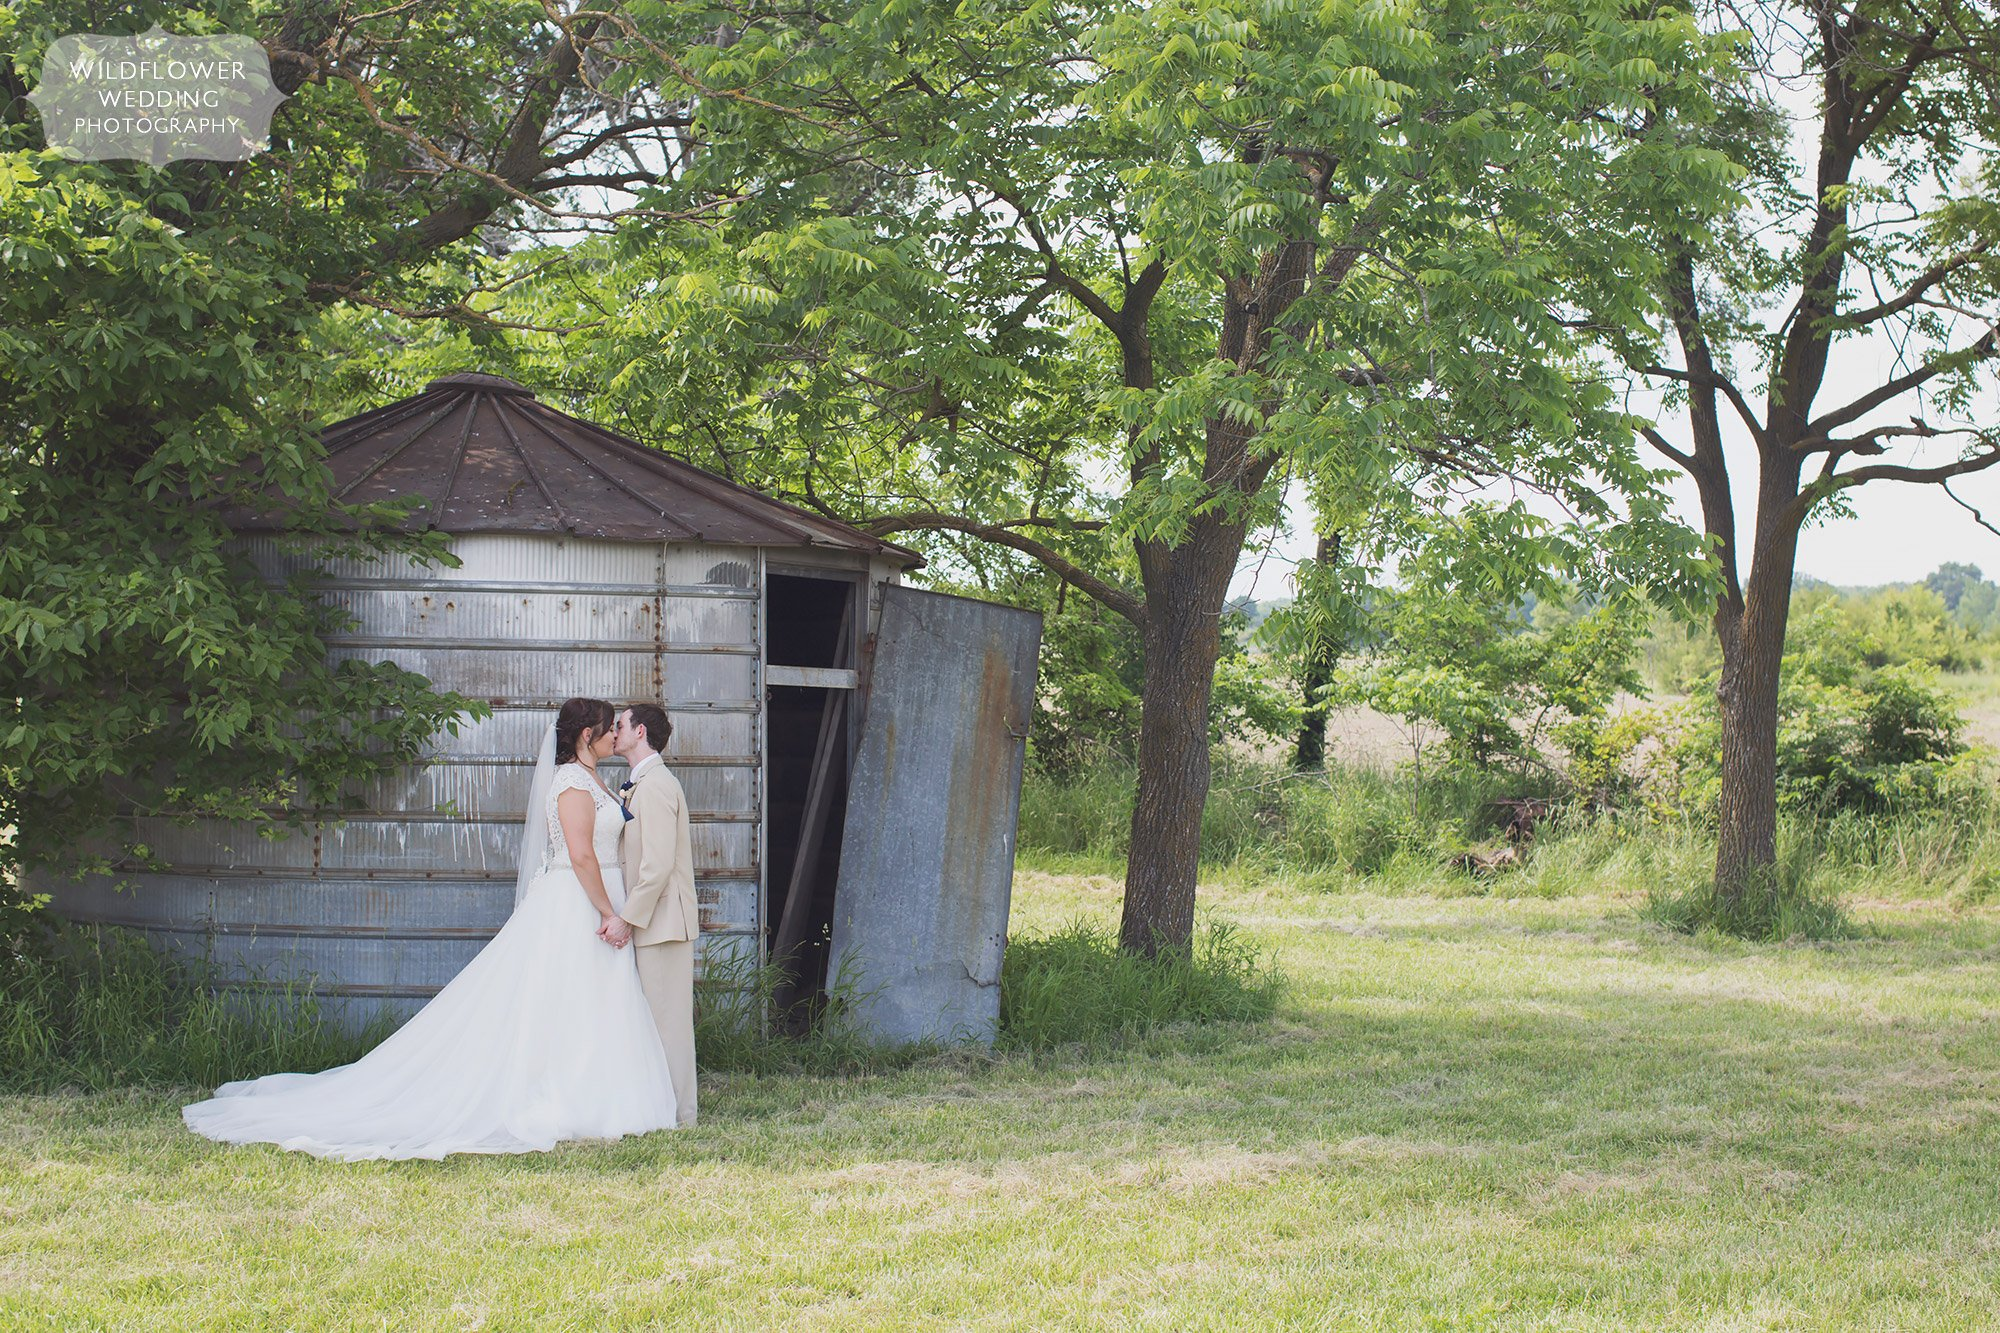 This Is One Of The Best Outdoor Country Wedding Venues Near Columbia, MO At  The